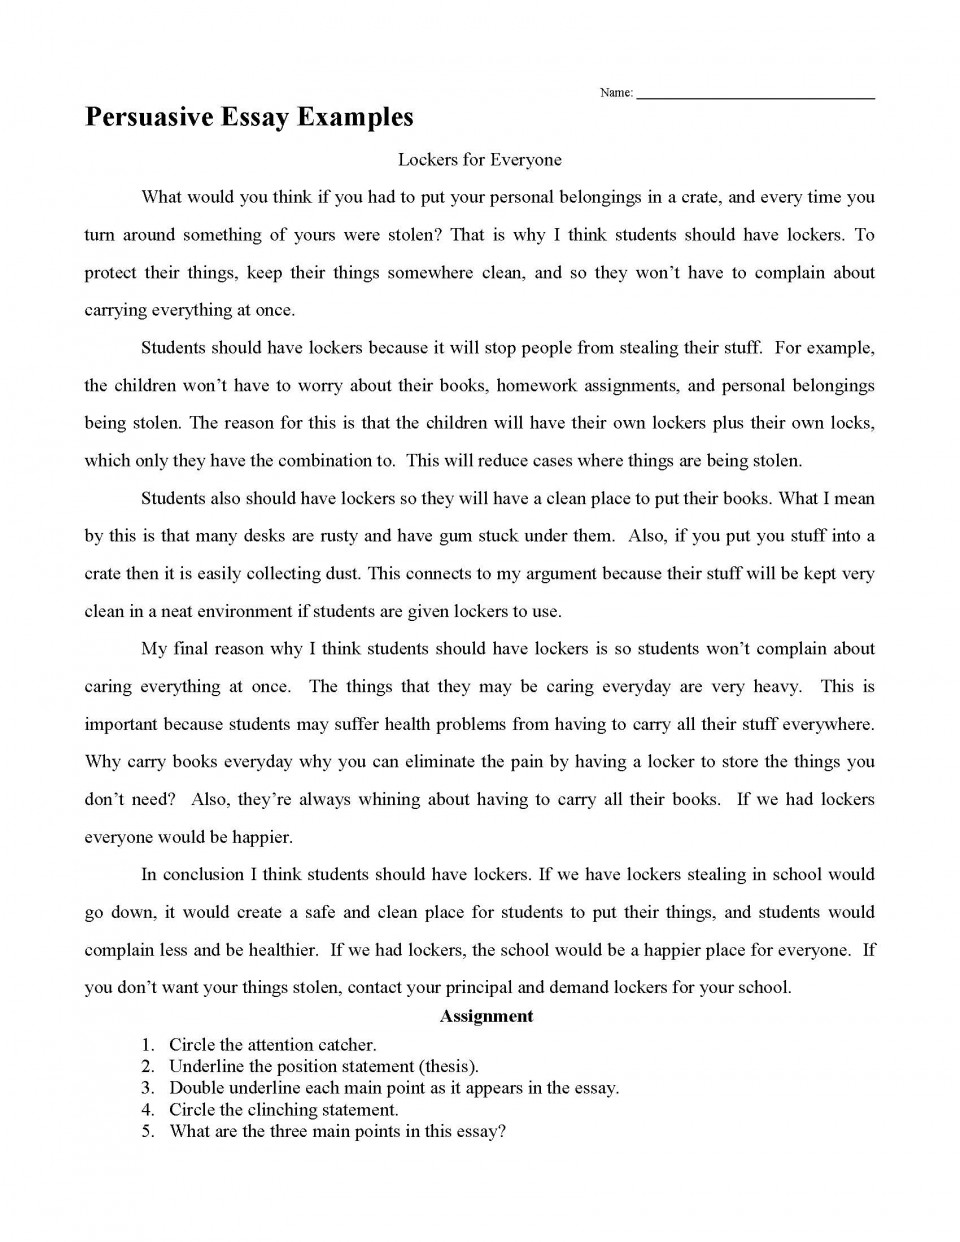 001 Essay Example Persuasive Examples How To Write Outstanding A For Middle Schoolers Ap Lang In Spanish 960